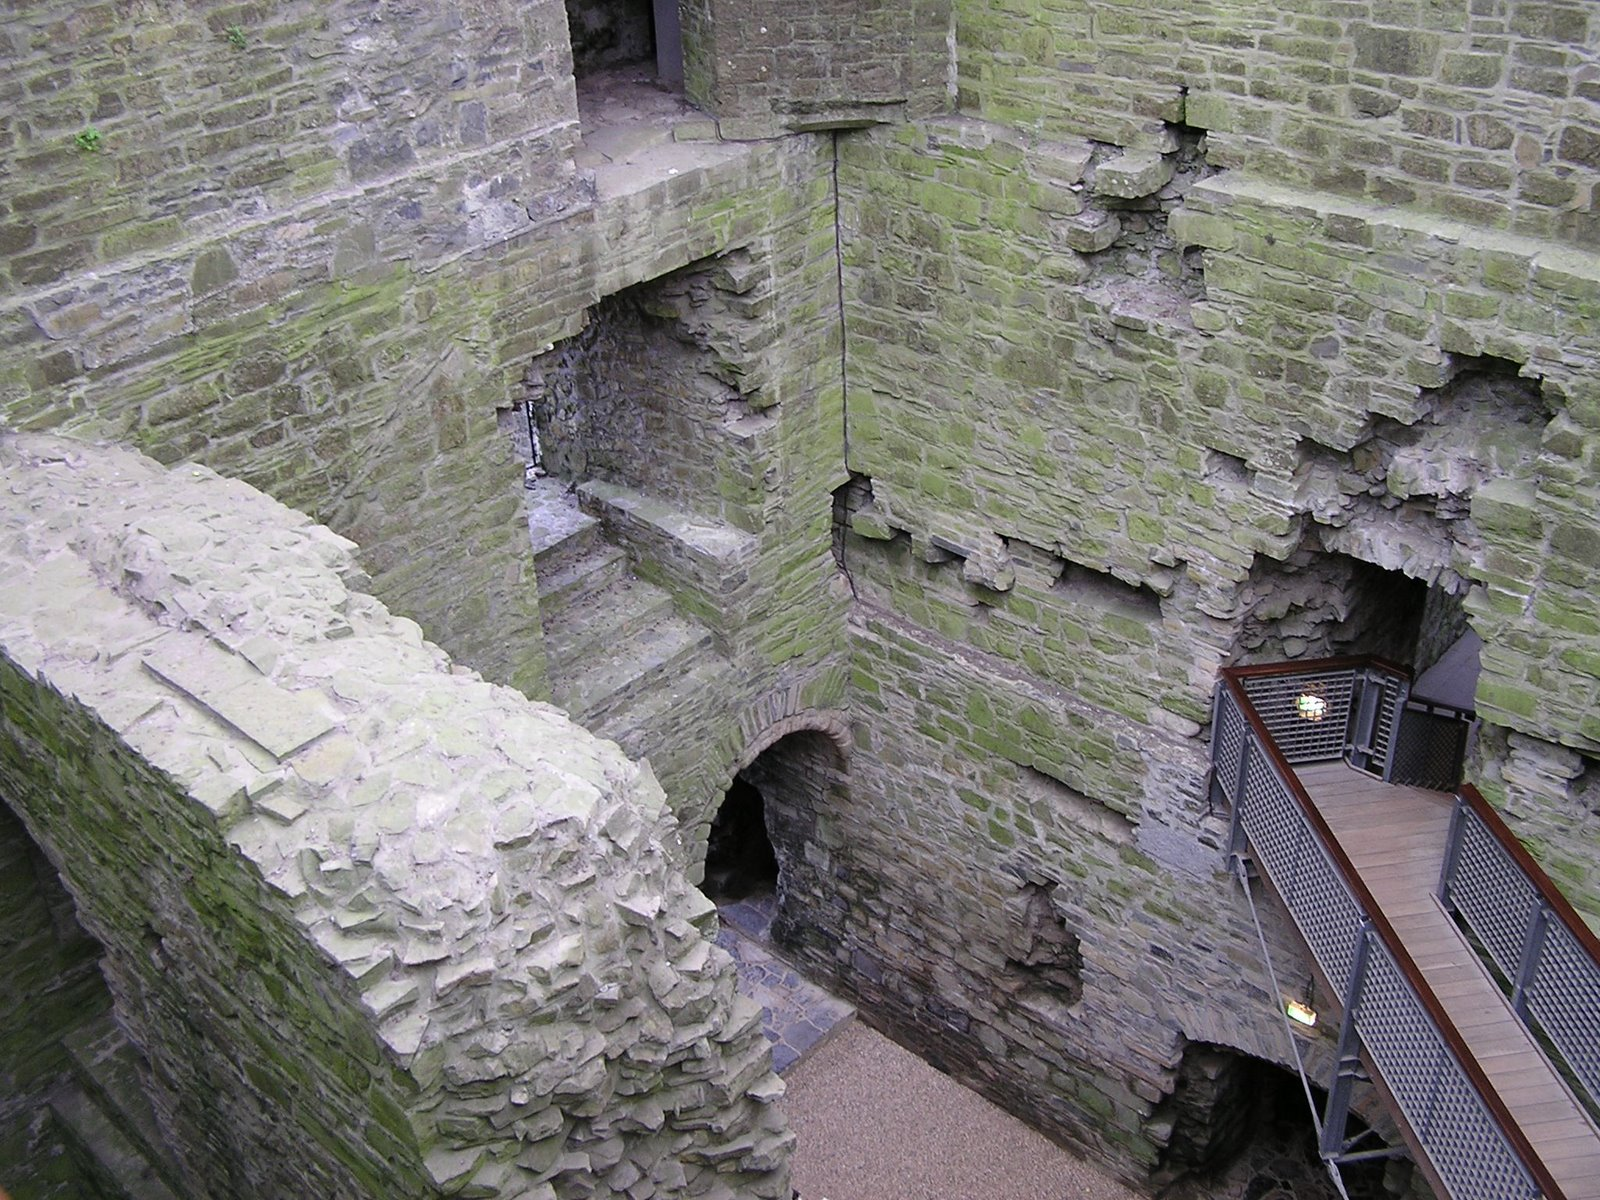 inside trim castle, ireland